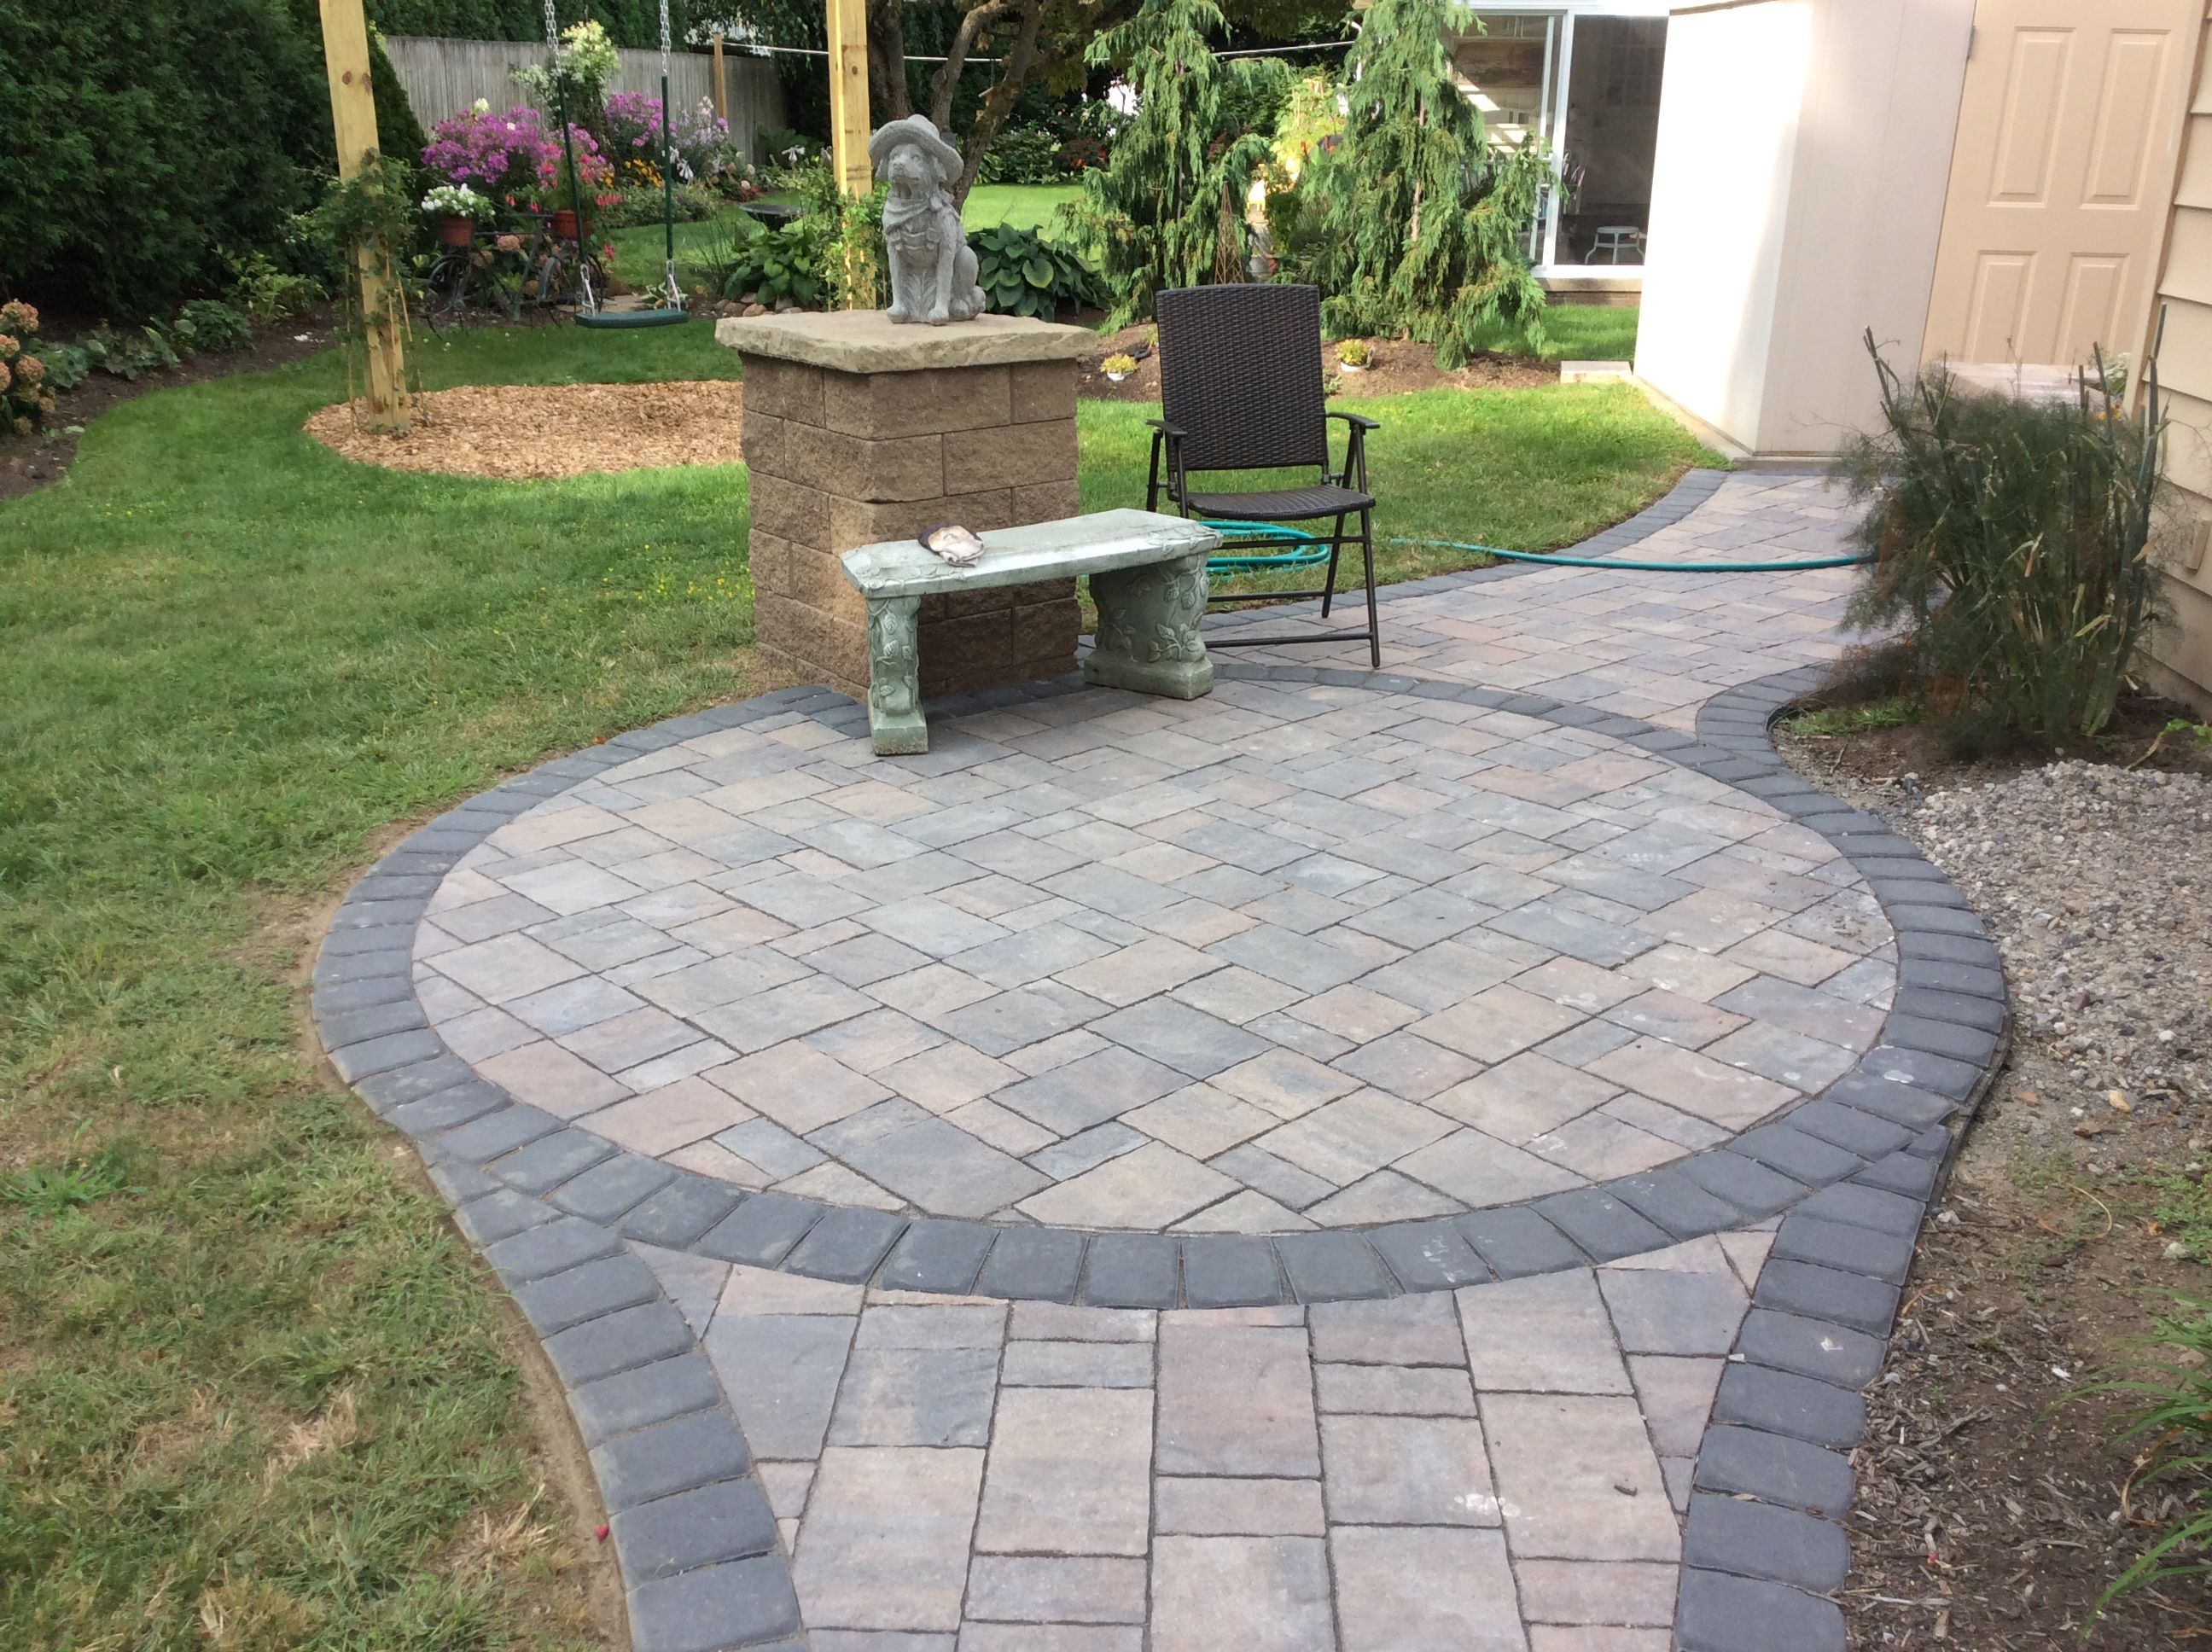 Hardscape project in Erie PA Belgard urbana pavers used for the